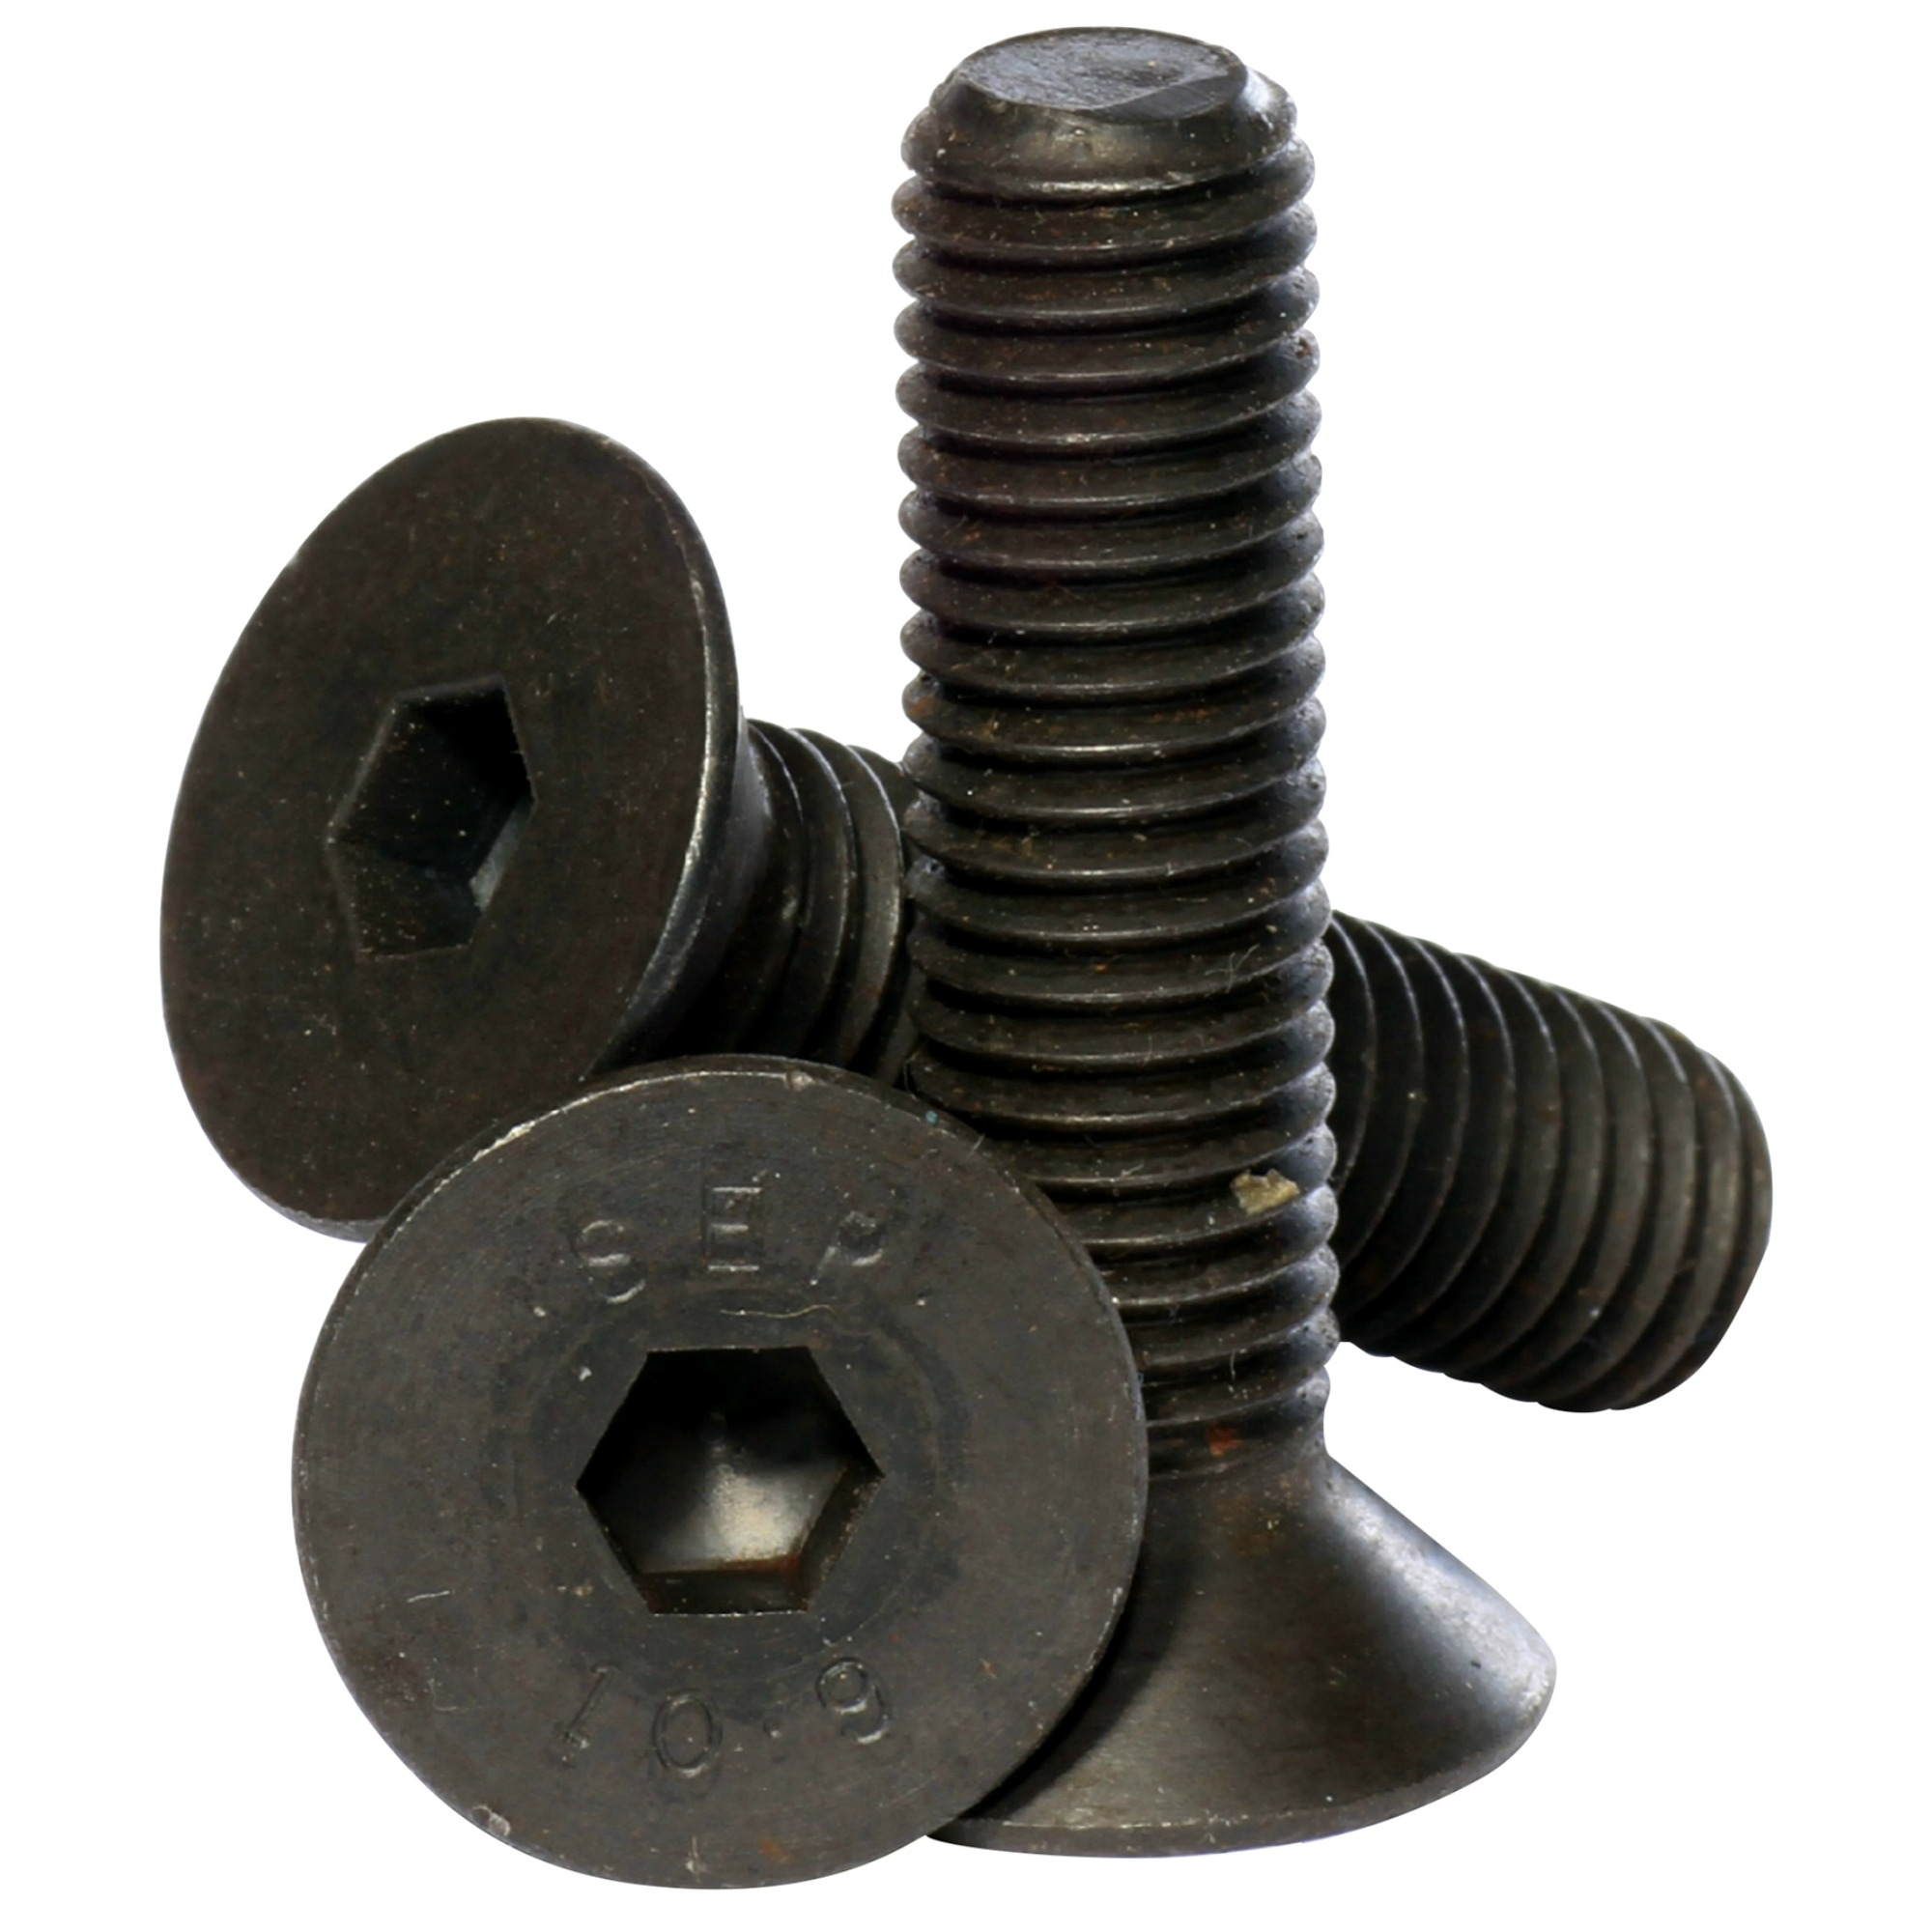 M2 M2.3 M3 M4 Socket Countersunk Screws Black Bolts DIN7991 High Tensile 10.9